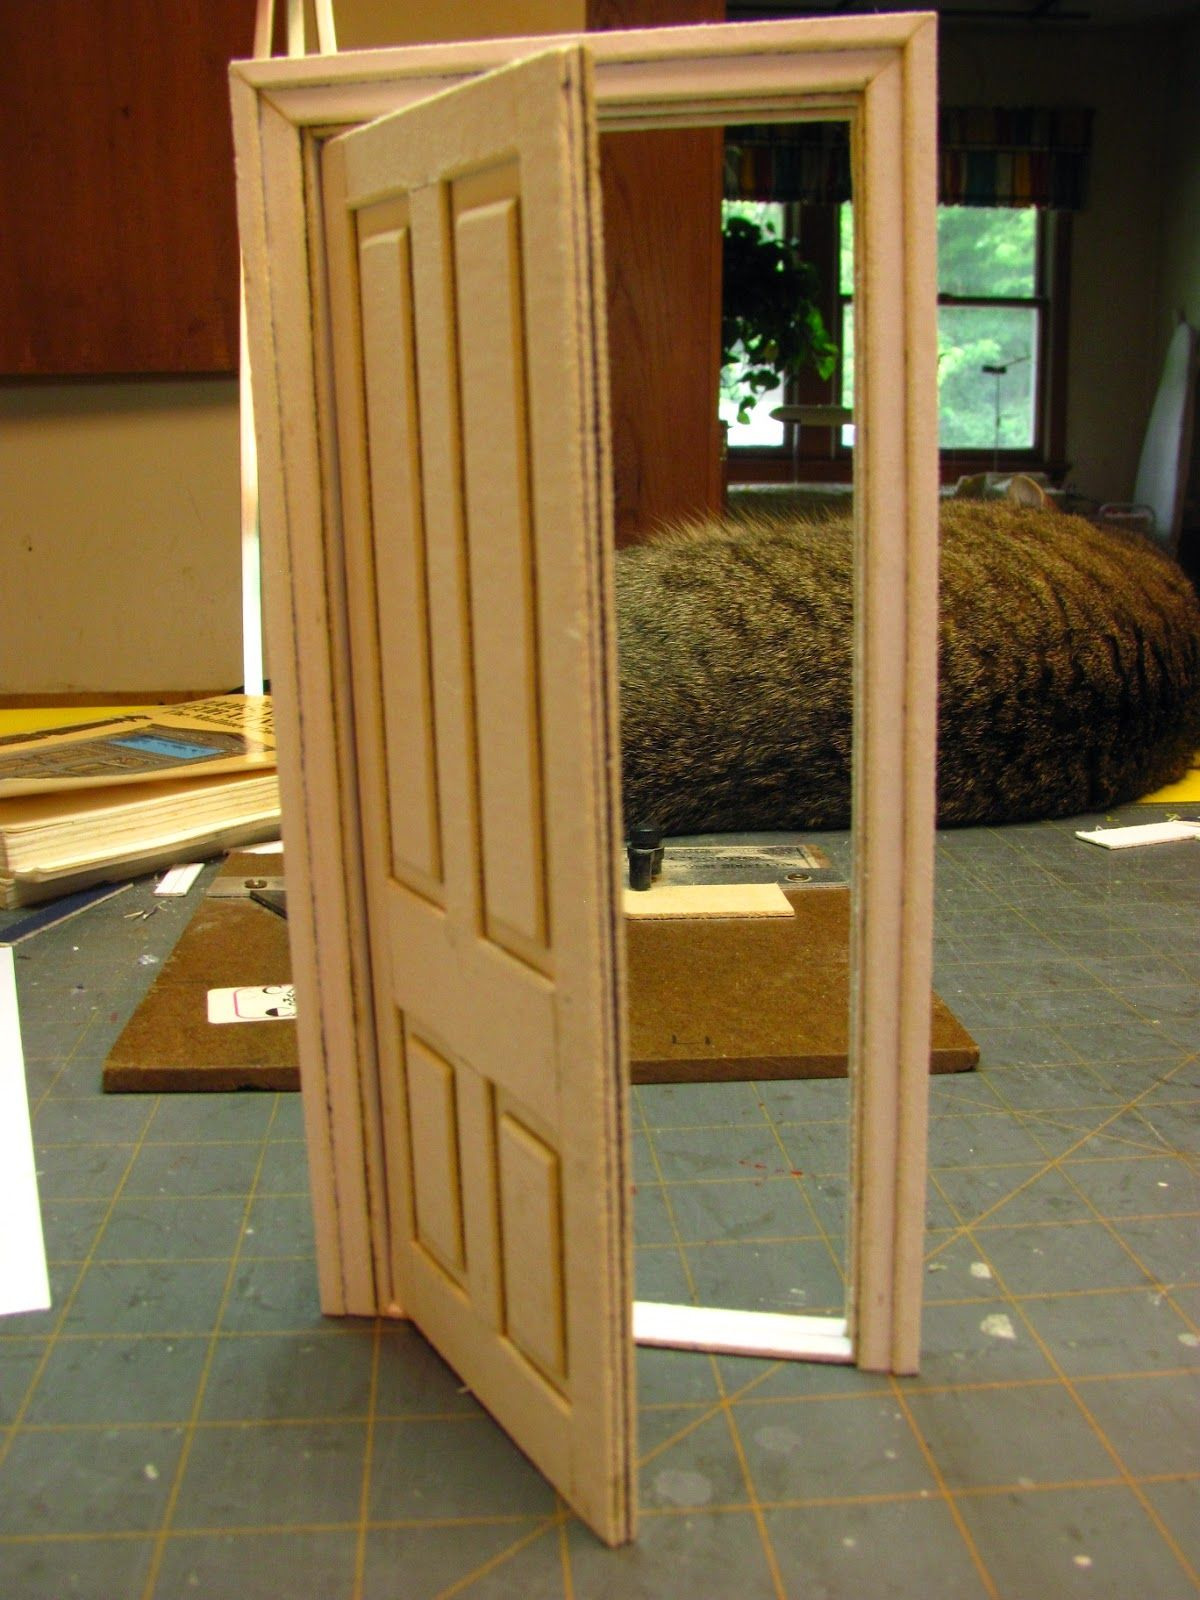 How to make a 1 inch scale dollhouse interior door and jamb from mat board. & How to make a 1 inch scale dollhouse interior door and jamb from mat ...